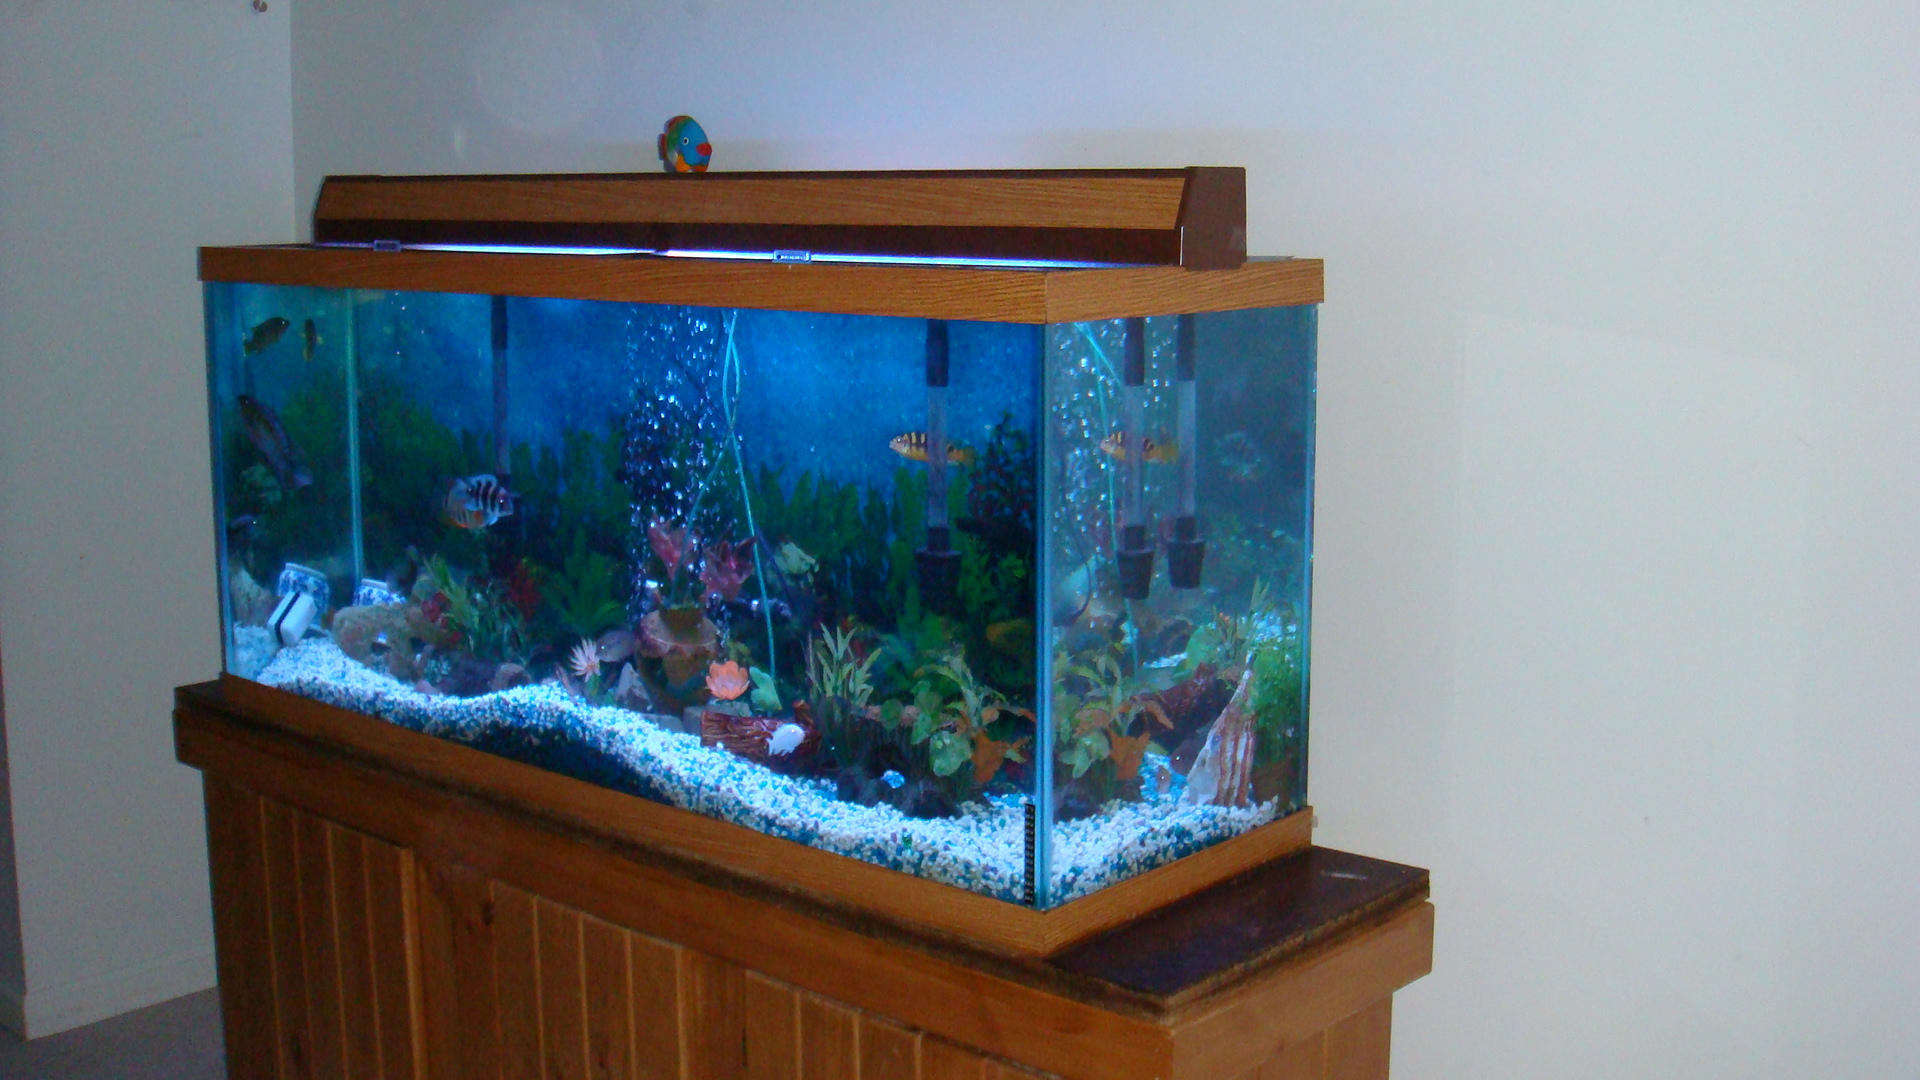 120 gallon aquarium for sale 120 gallon aquarium for